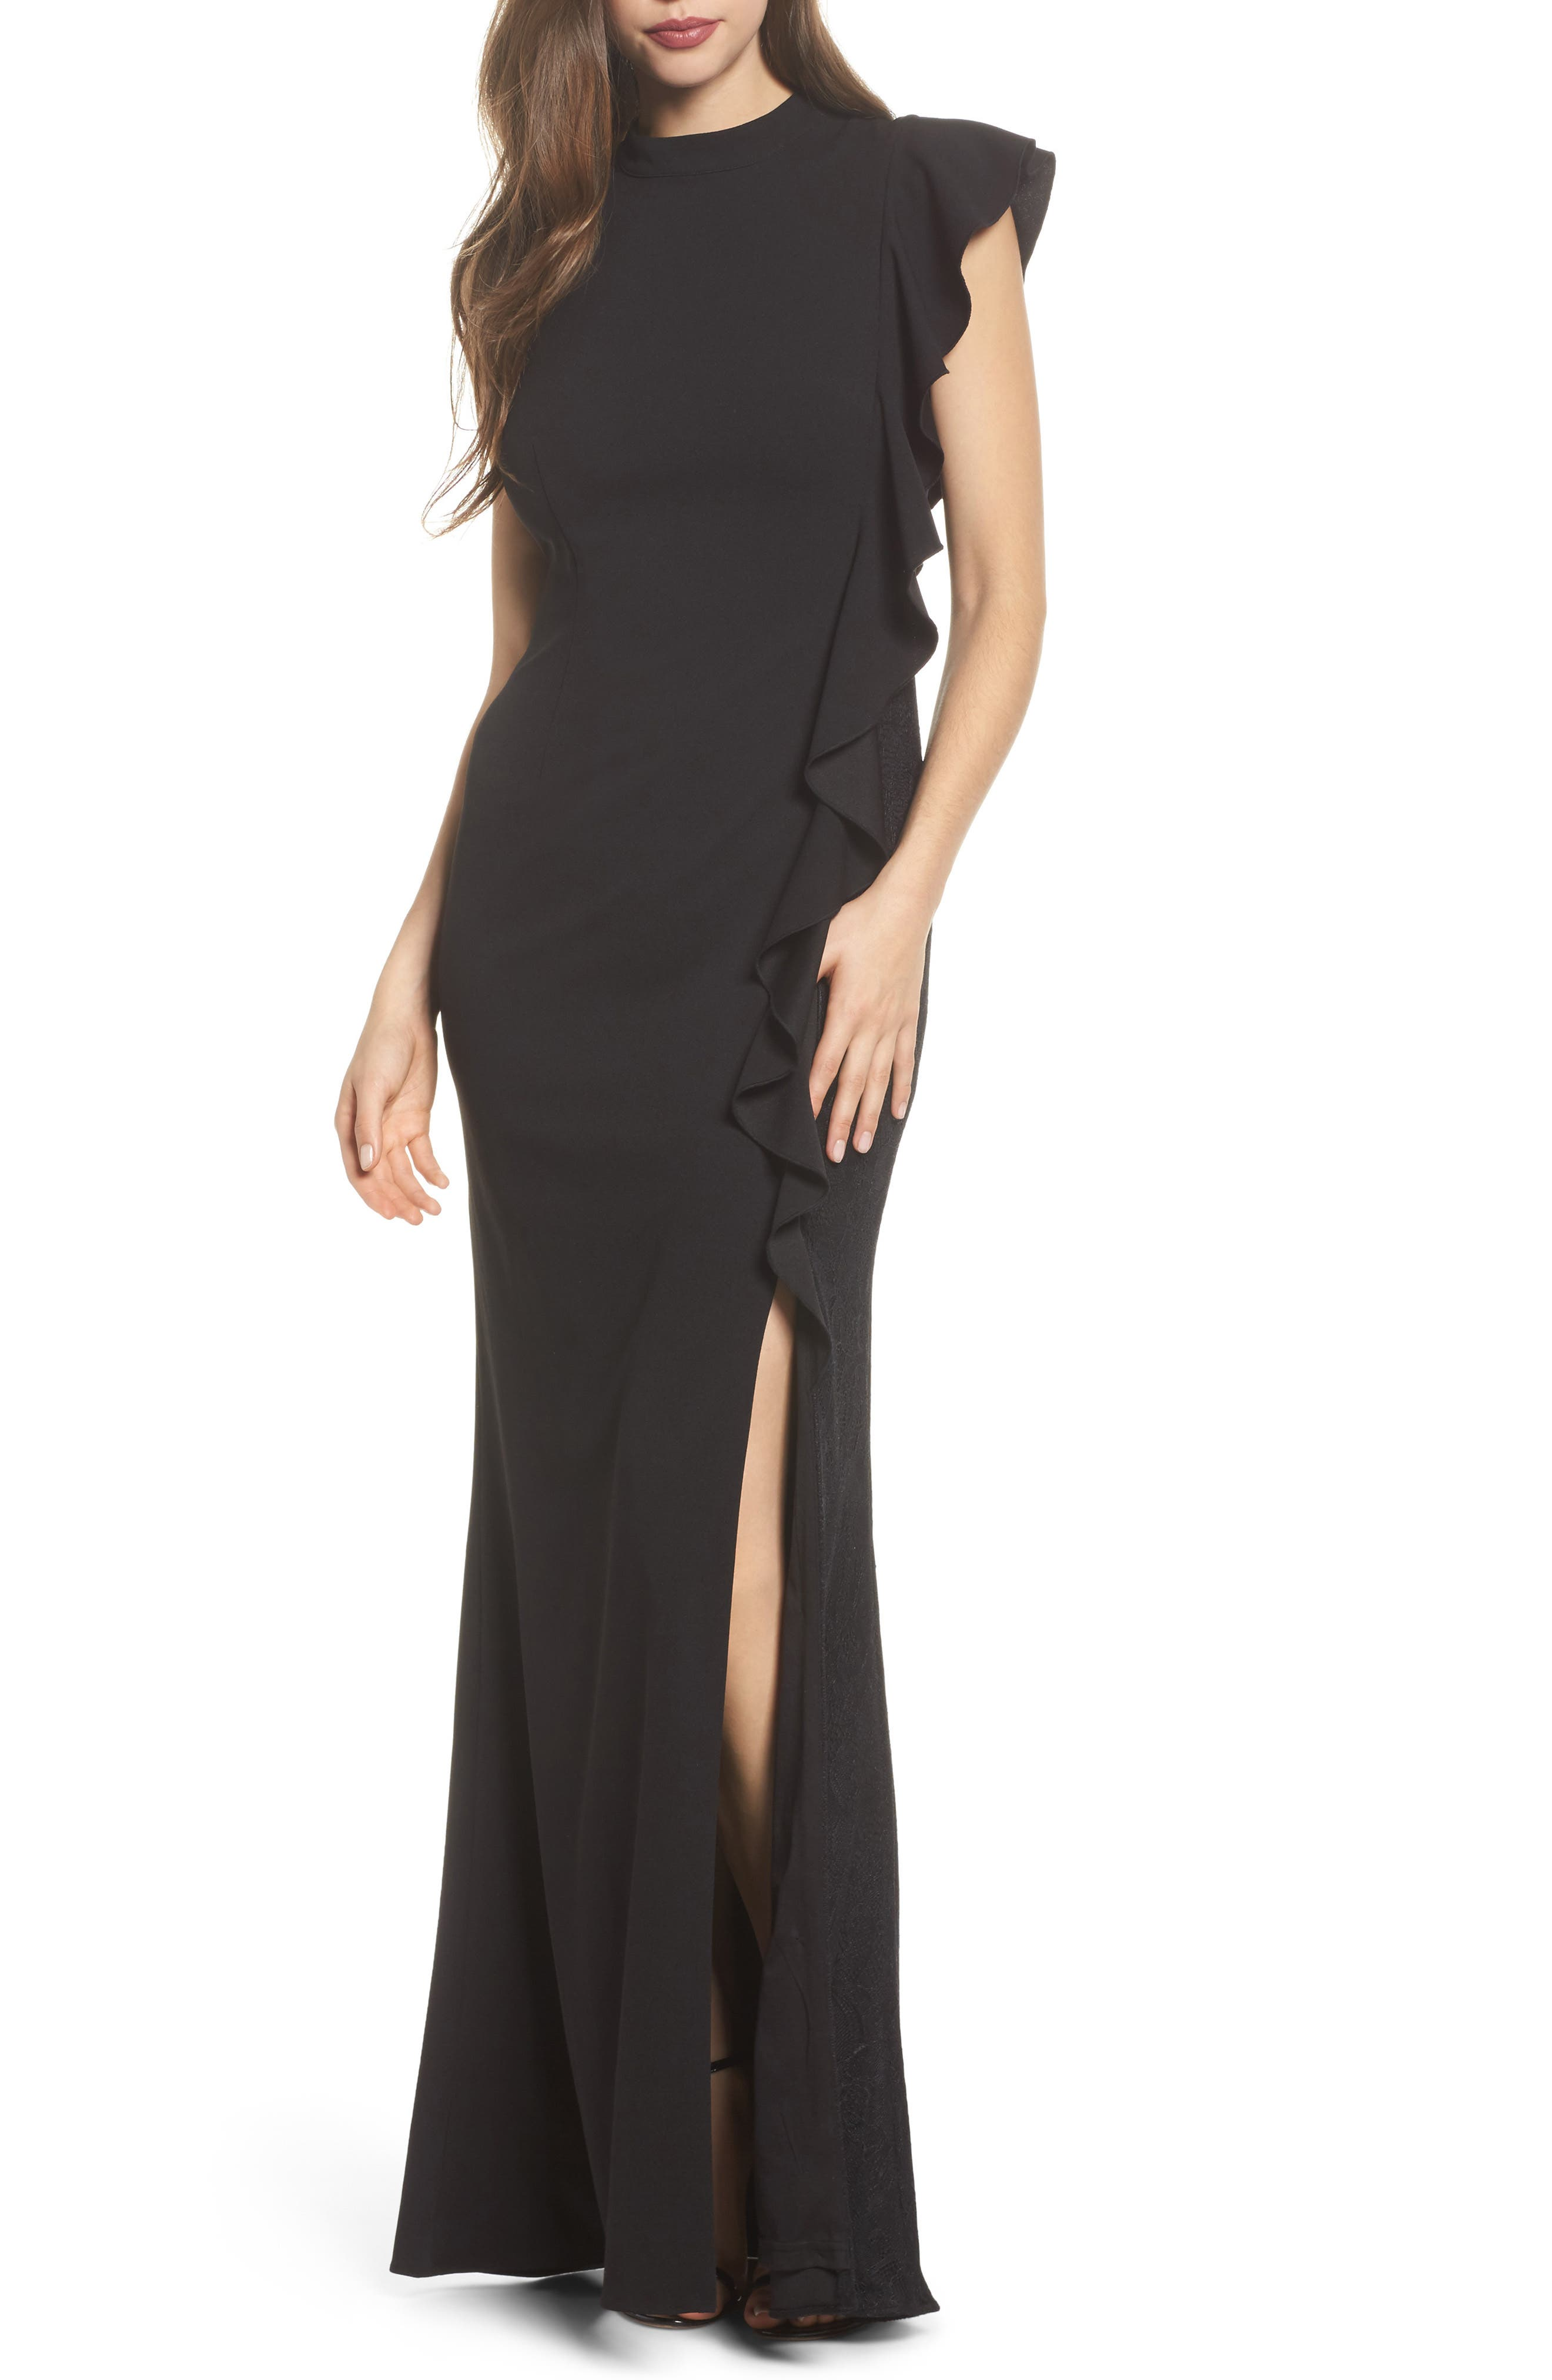 ADRIANNA PAPELL RUFFLE SIDE CREPE MERMAID GOWN, BLACK | ModeSens